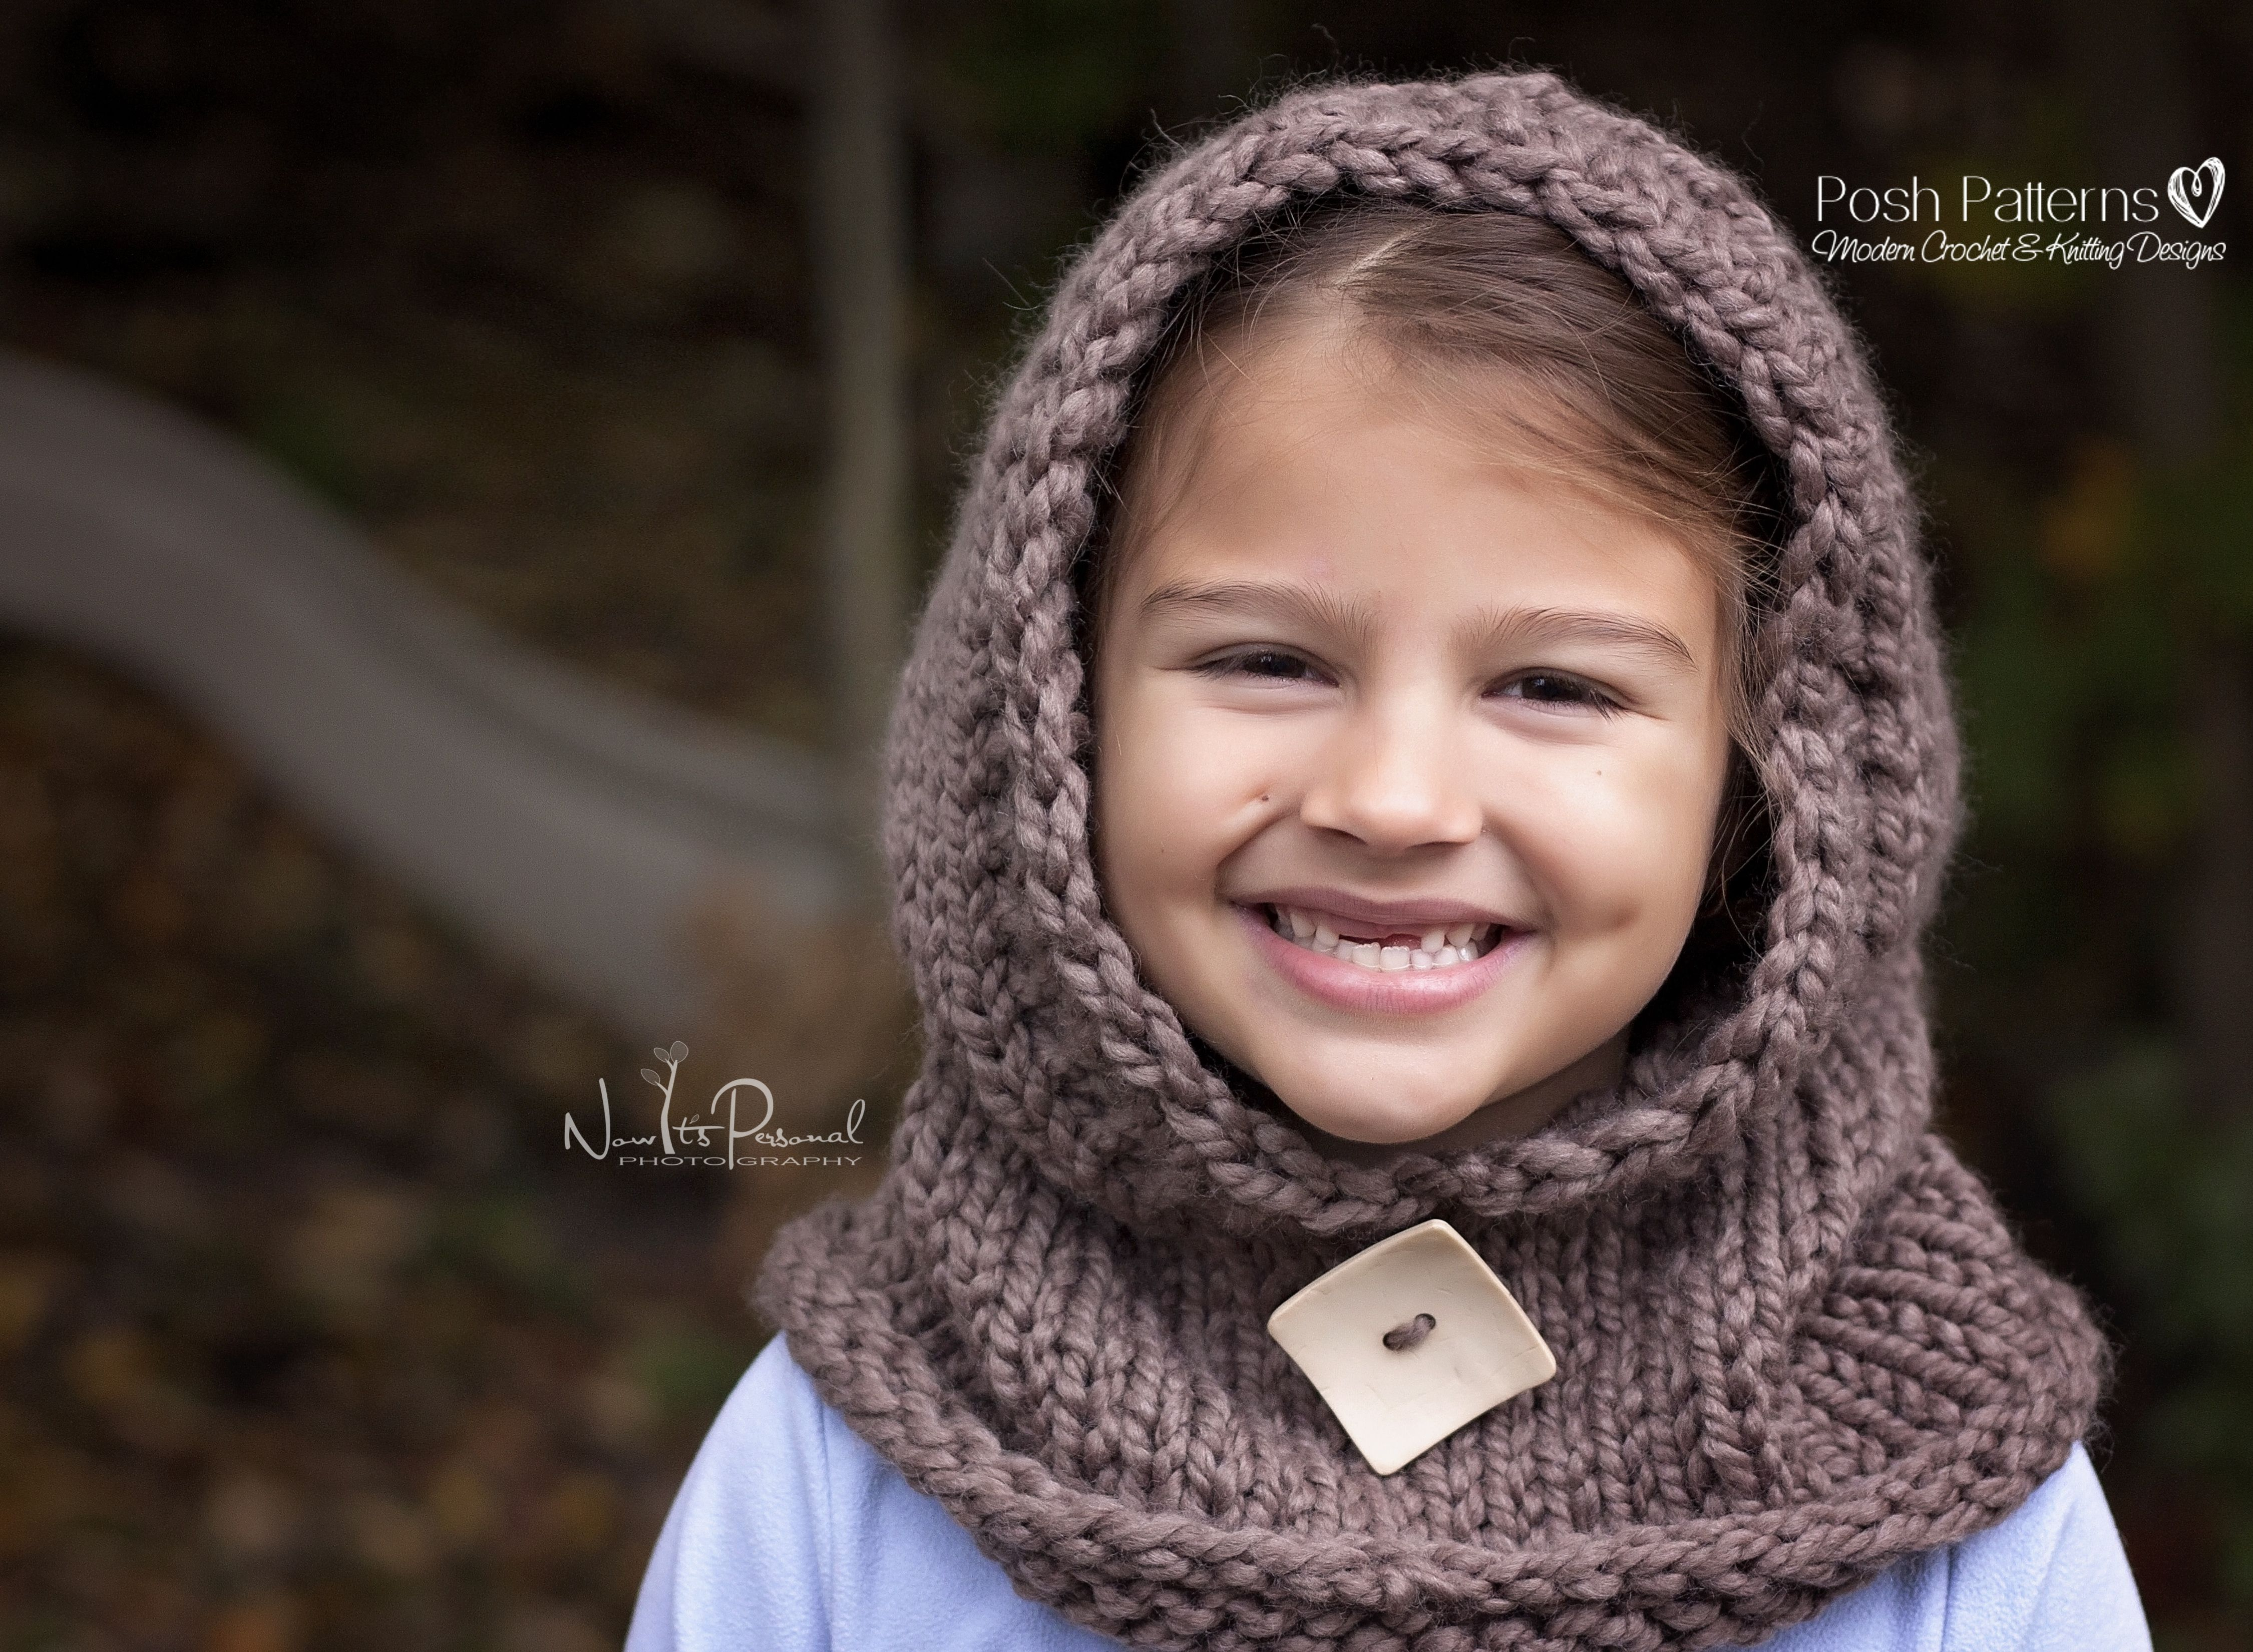 Knitting pattern knit hooded cowl pattern hooded cowl 12 a super cute hooded cowl knitting pattern that is cozy and fun to wear includes bankloansurffo Choice Image